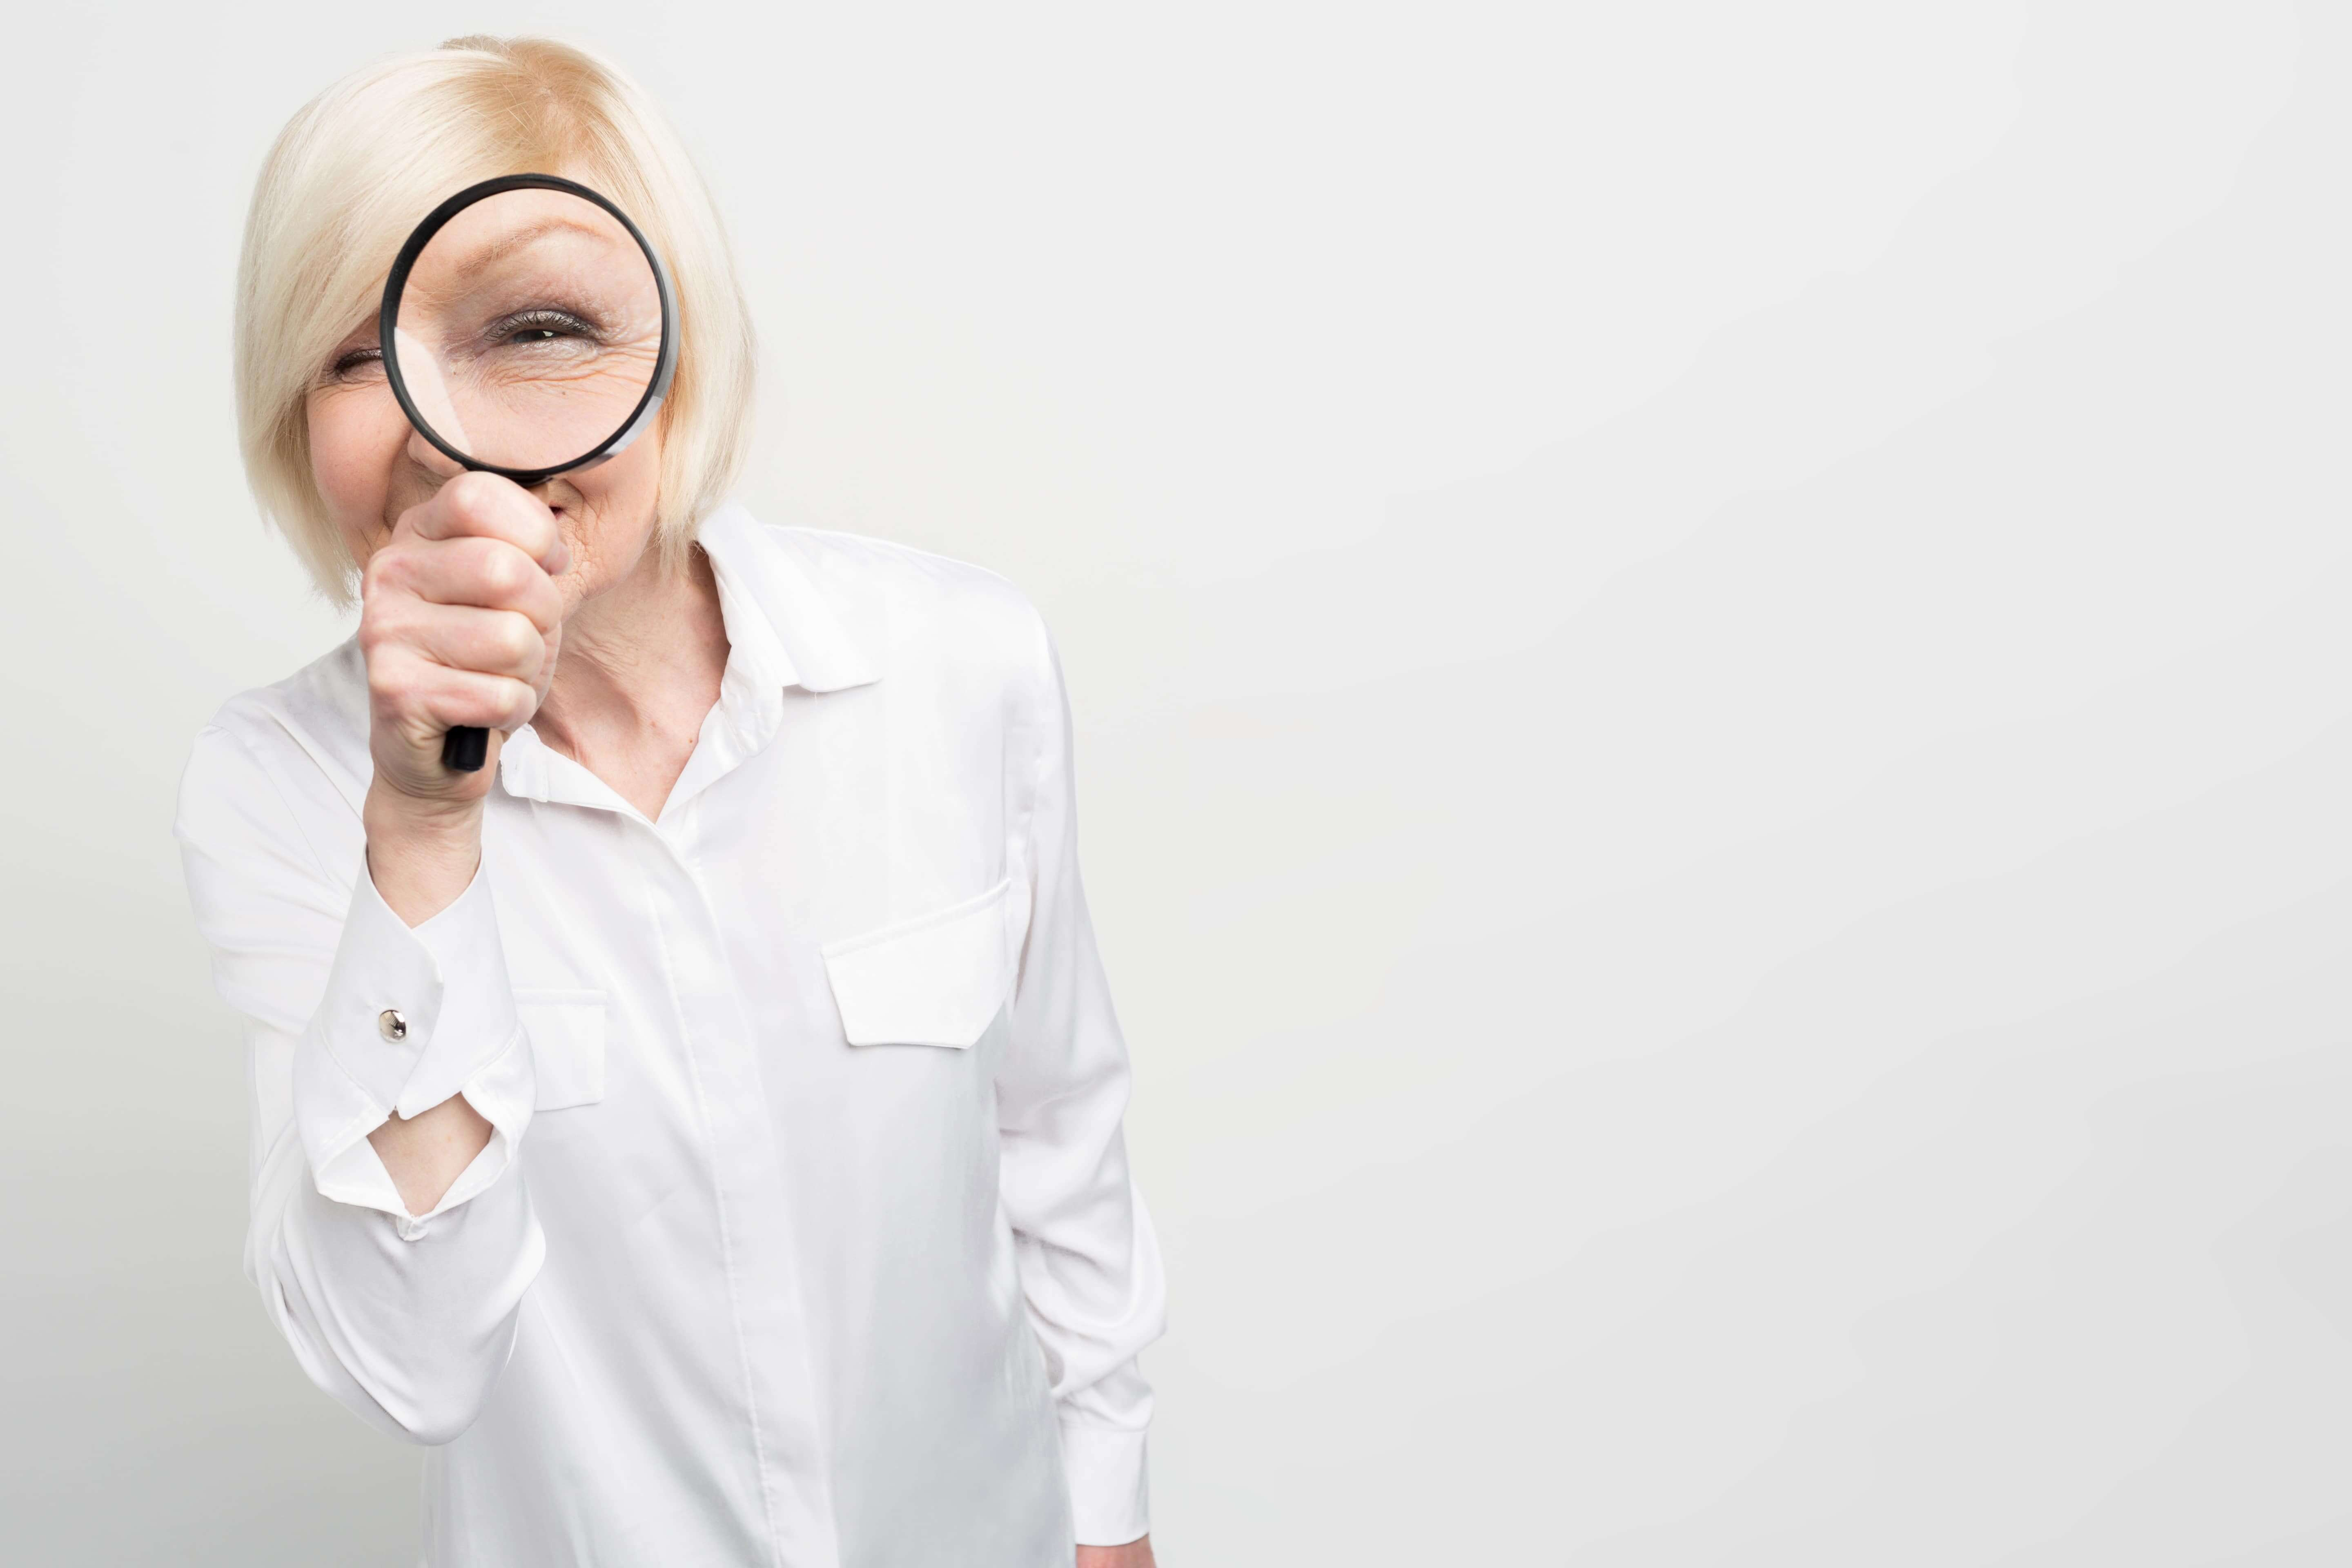 Older woman inspecting holding a magnifying glass up to her eye